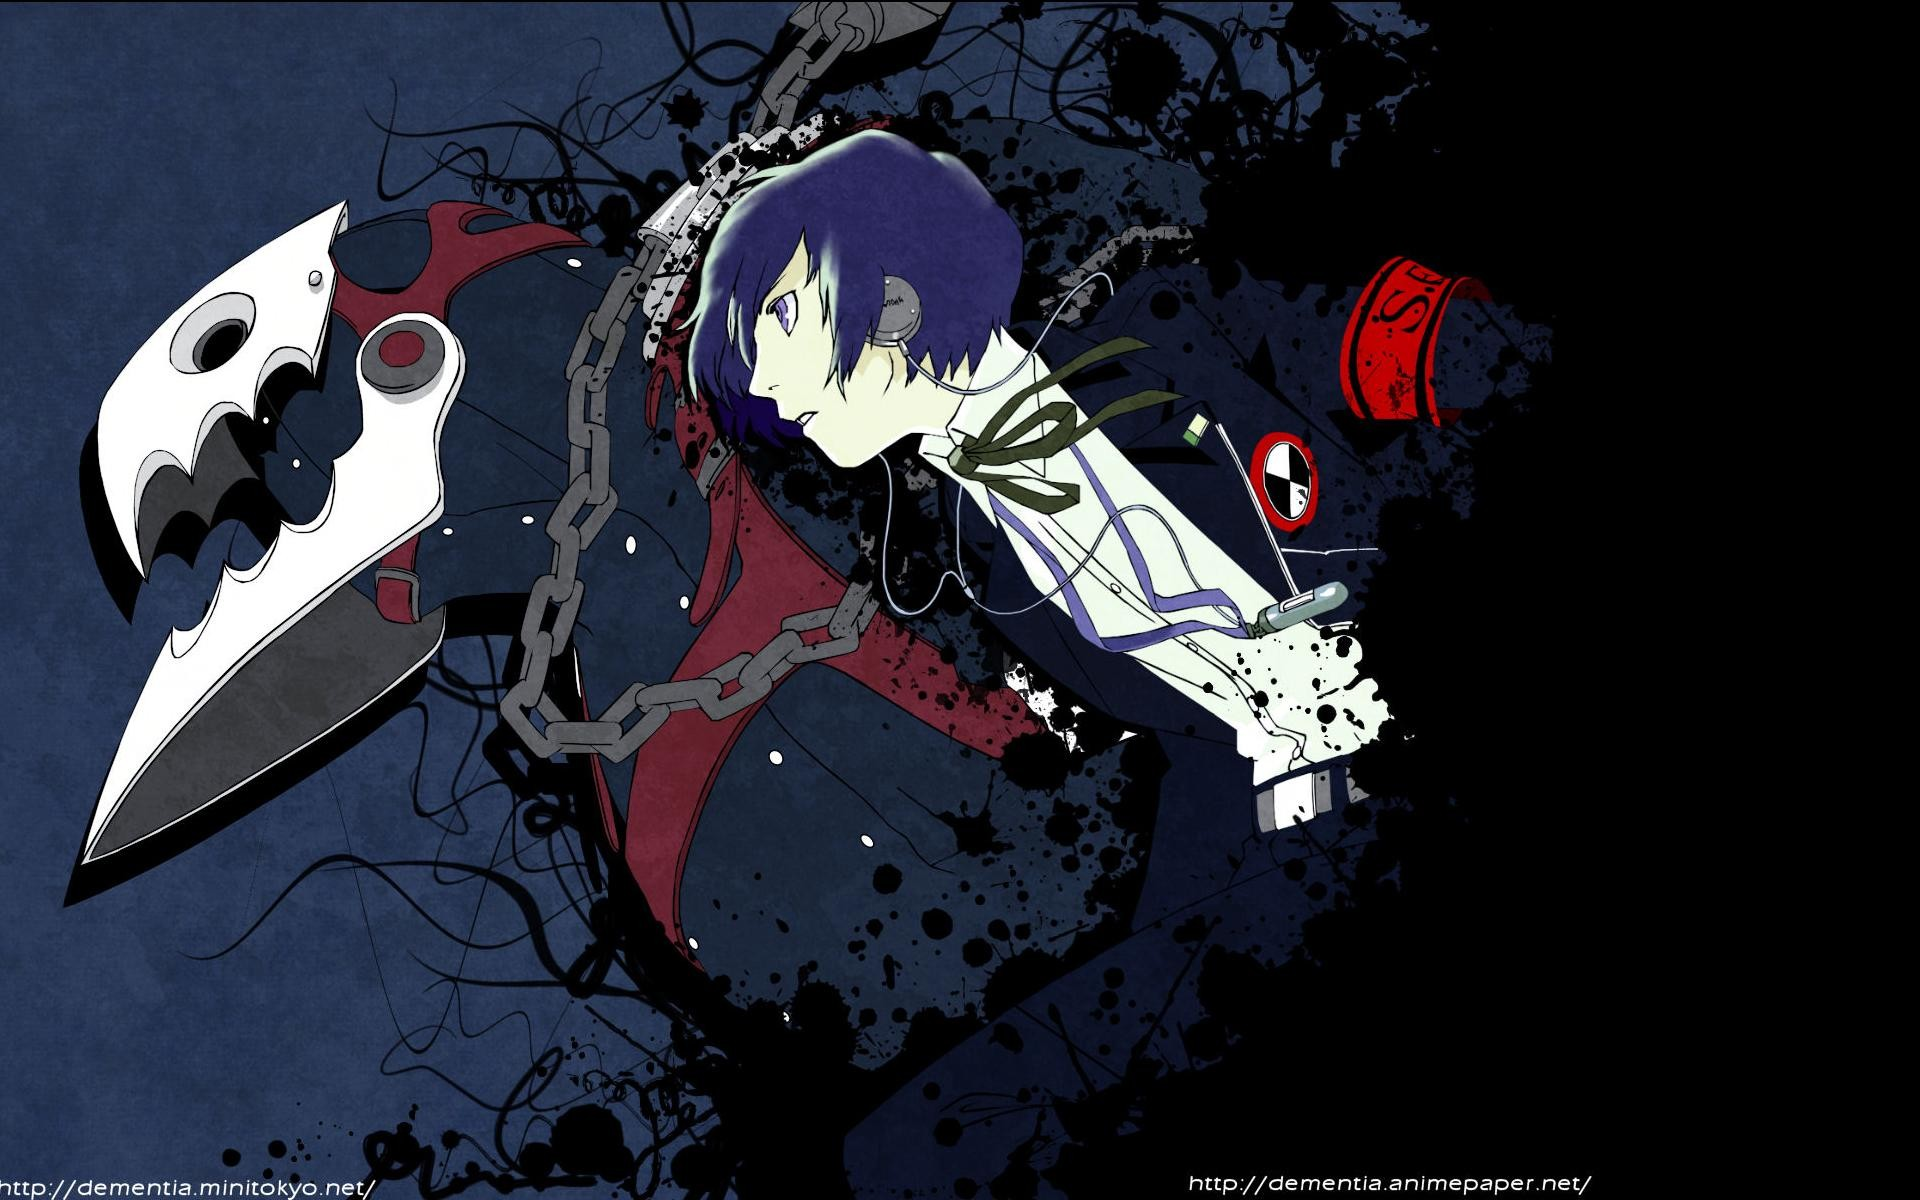 Persona 3 Wallpaper 4k: Persona Wallpaper ·① Download Free Stunning HD Wallpapers